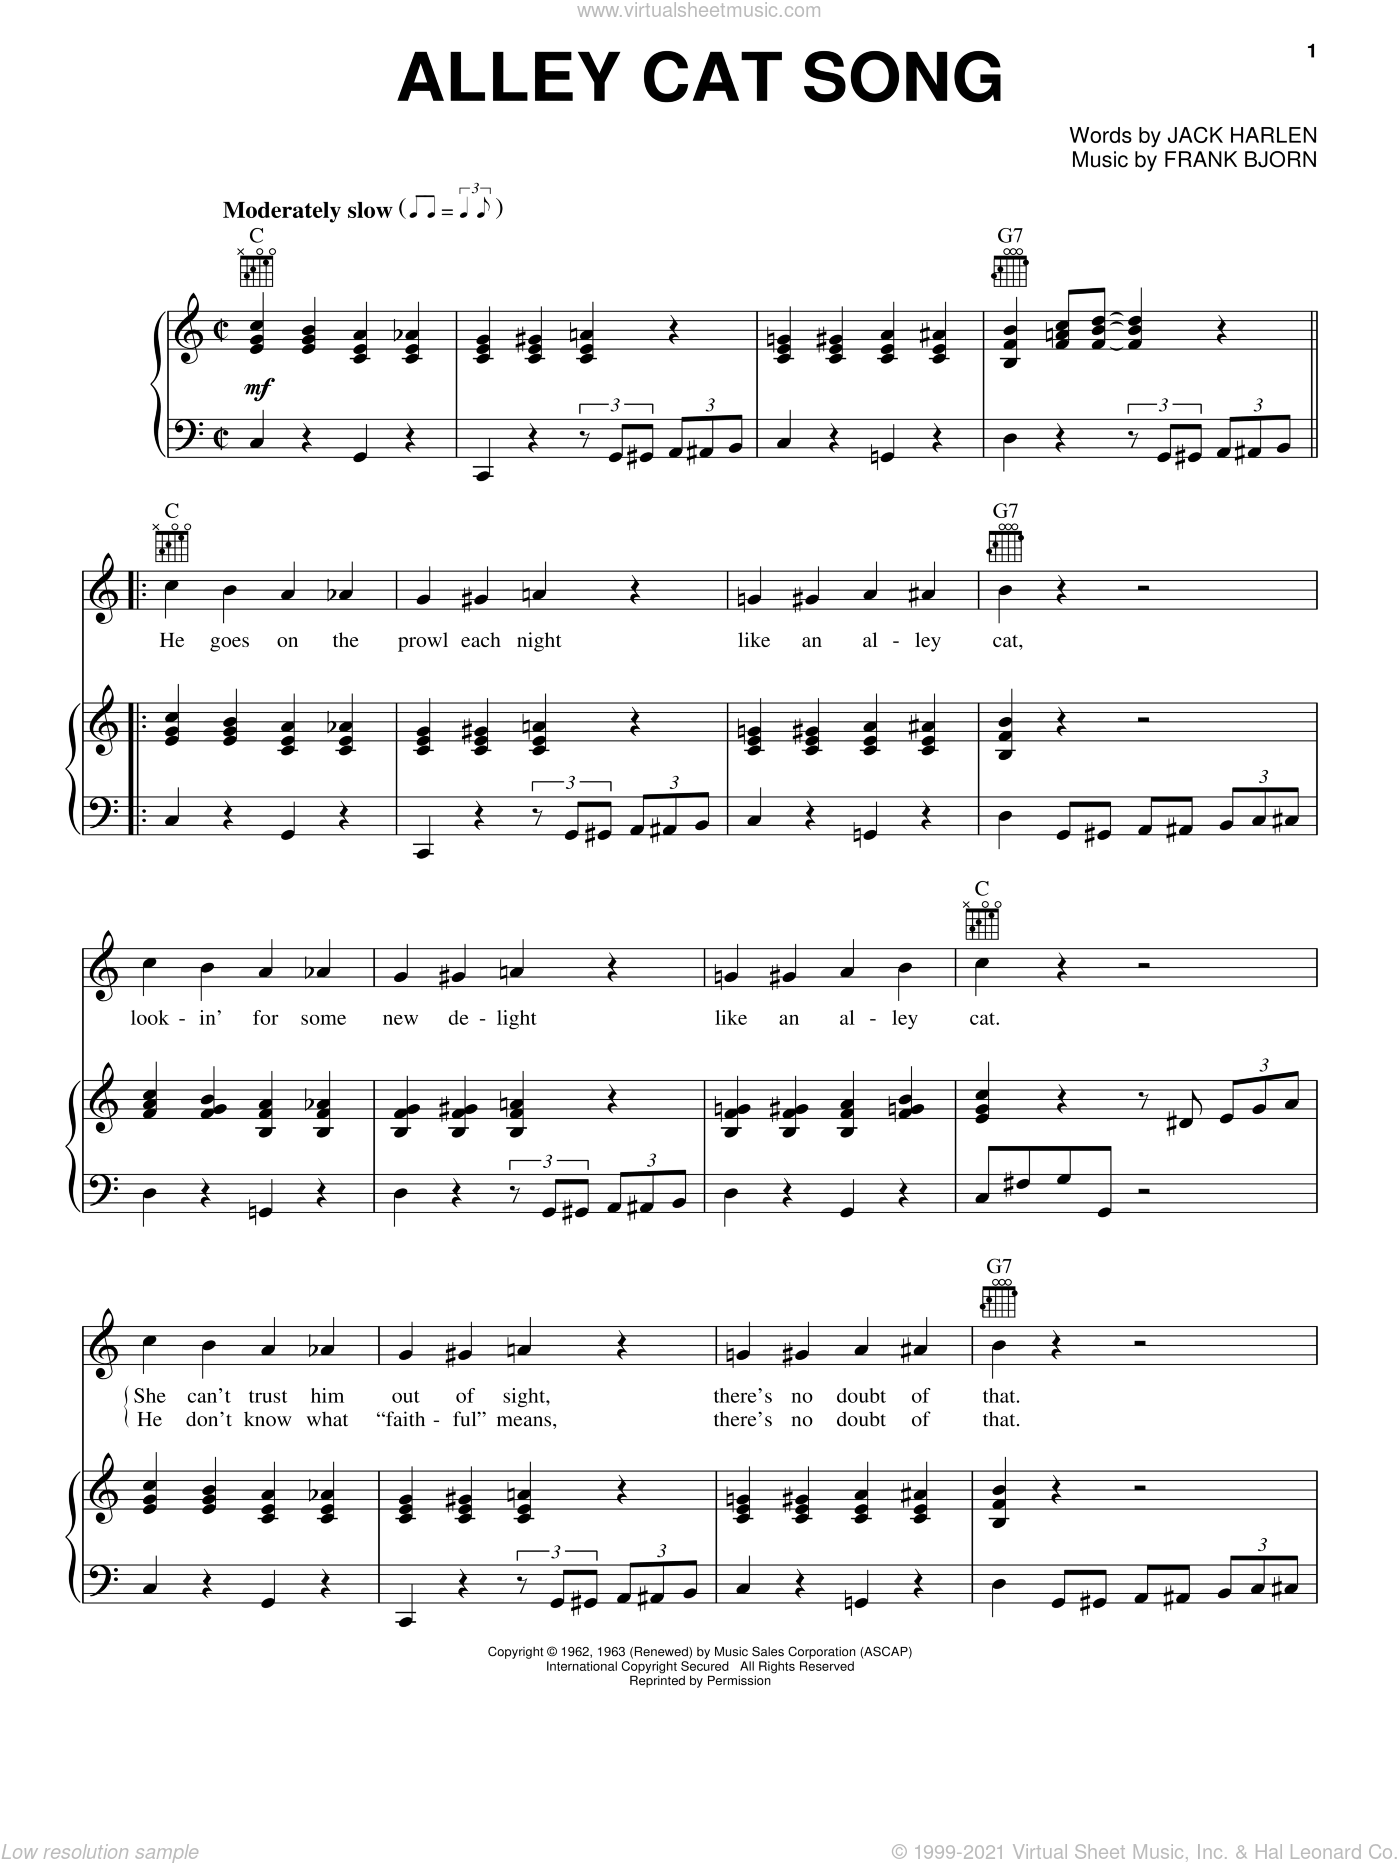 Alley Cat Song sheet music for voice, piano or guitar by Peggy Lee, Frank Bjorn and Jack Harlen, intermediate skill level